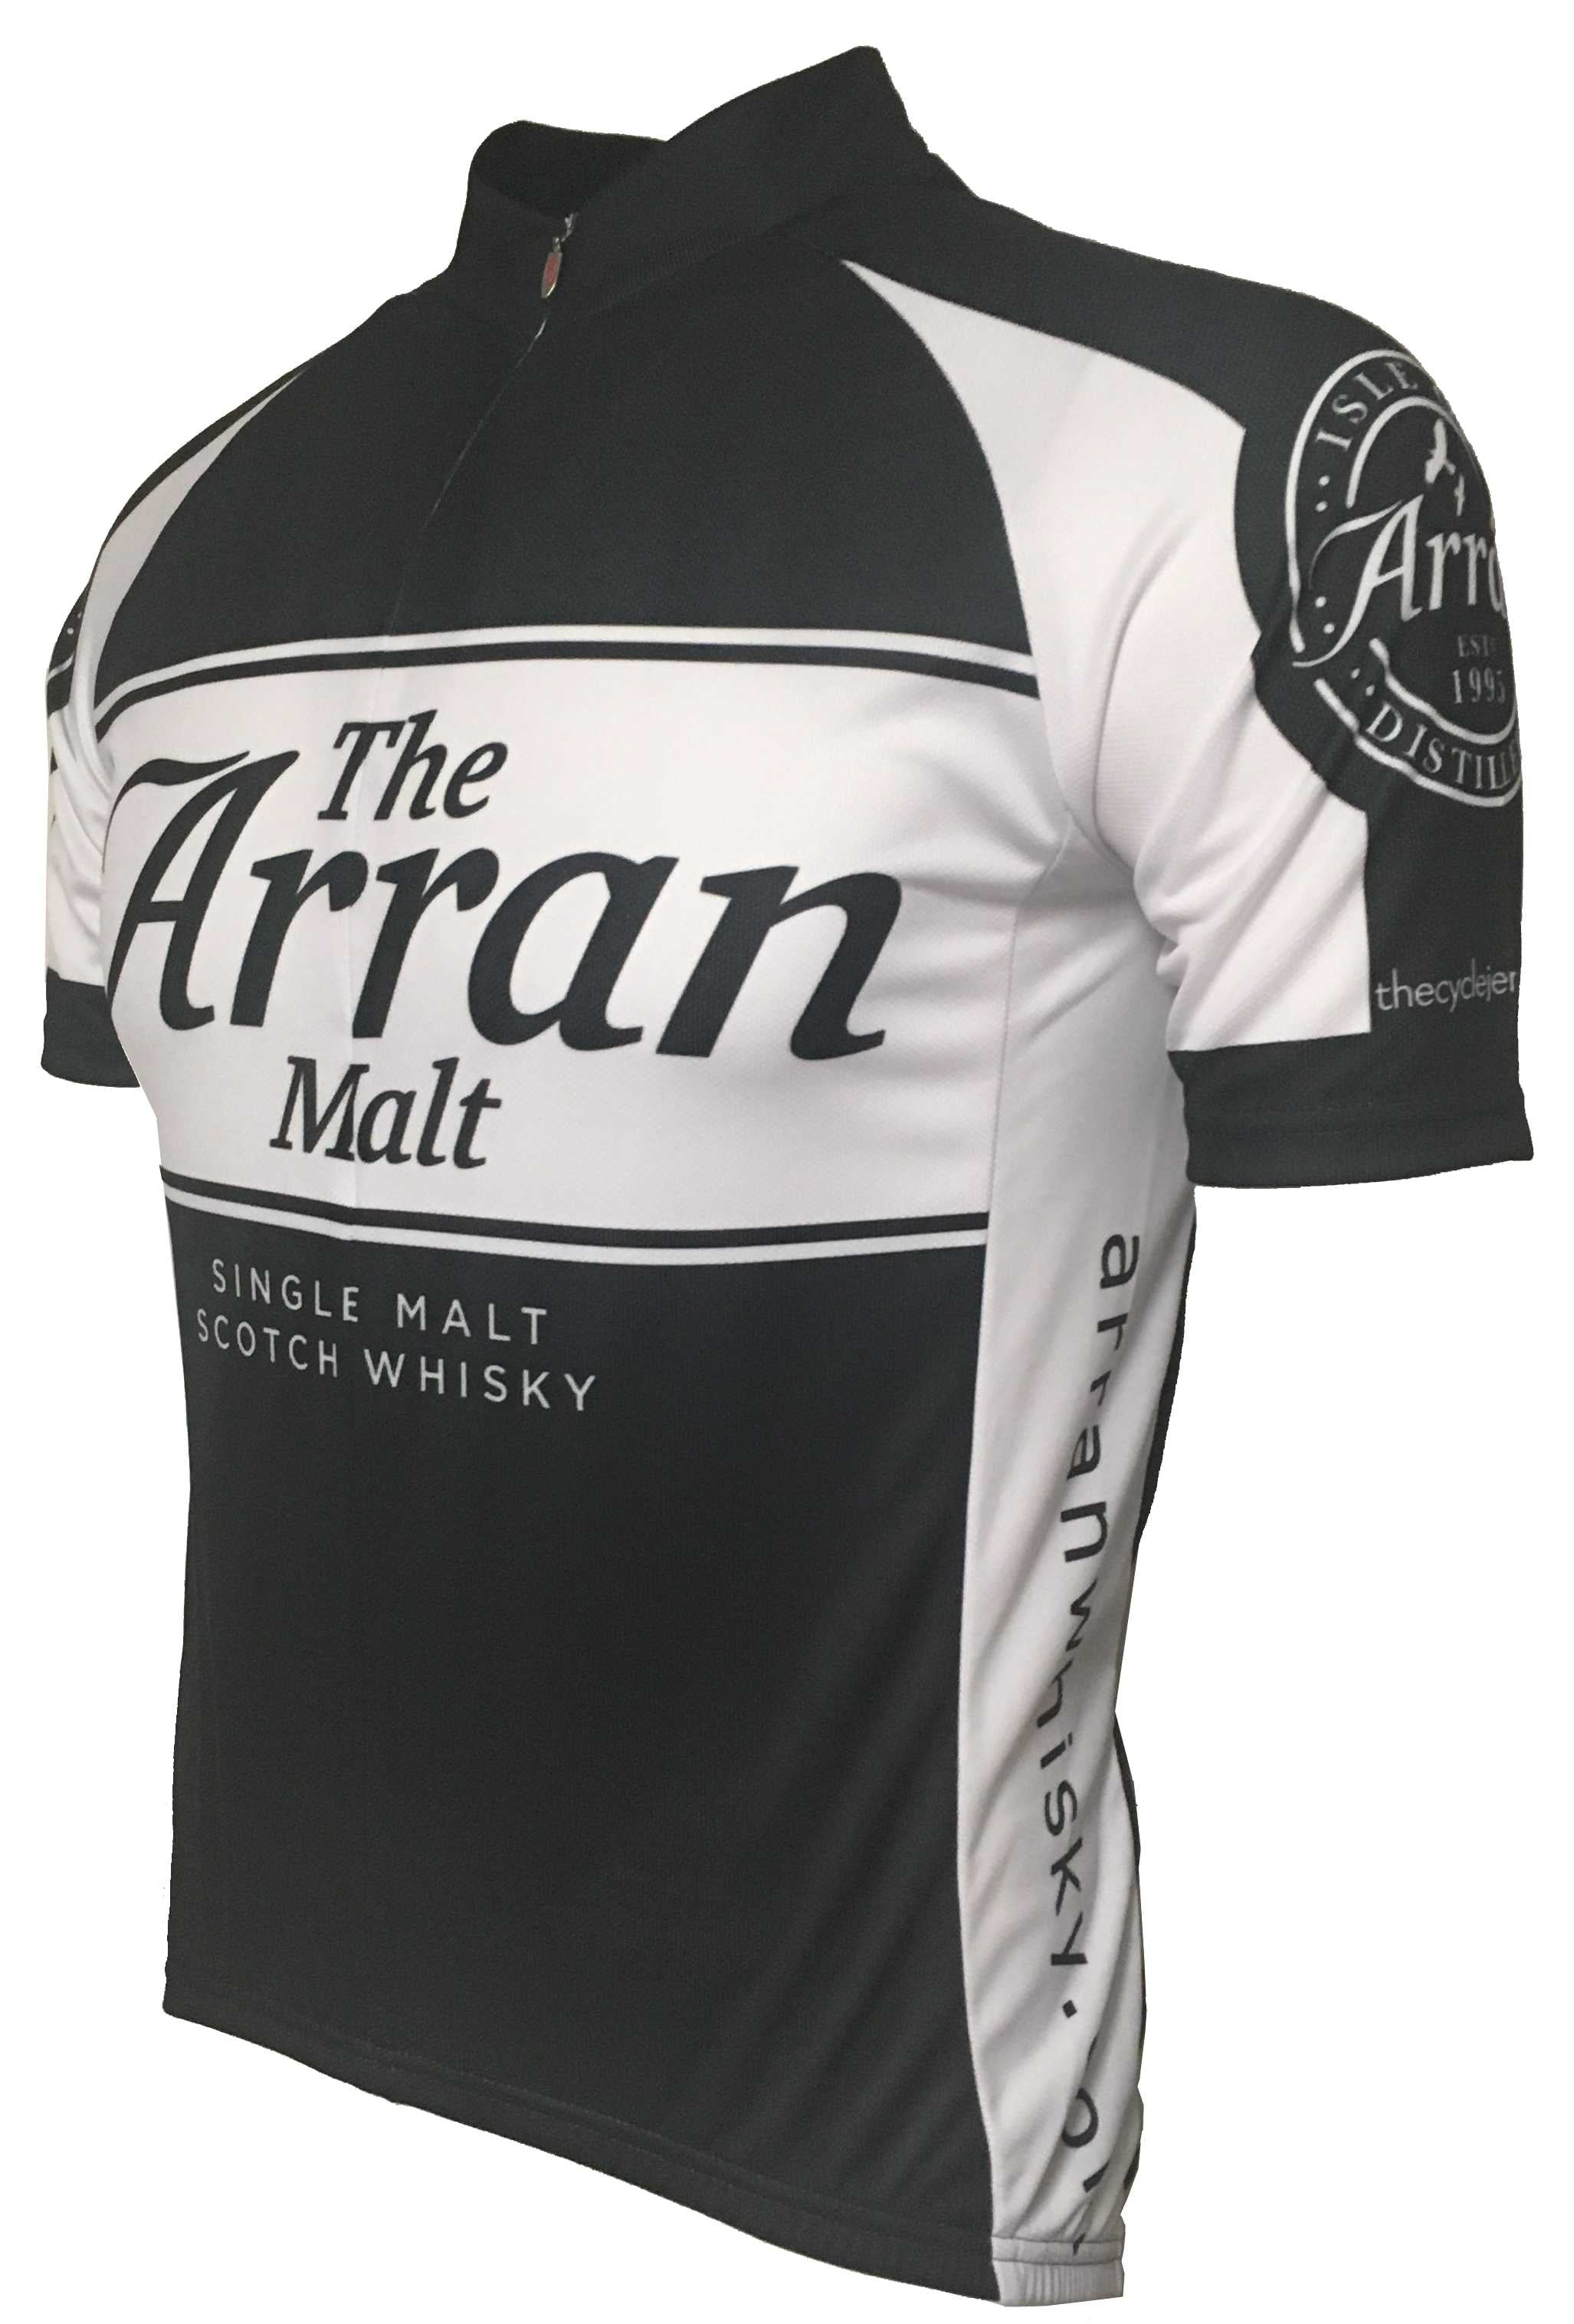 Arran Malt Whisky Black Enduro Cycling Jersey